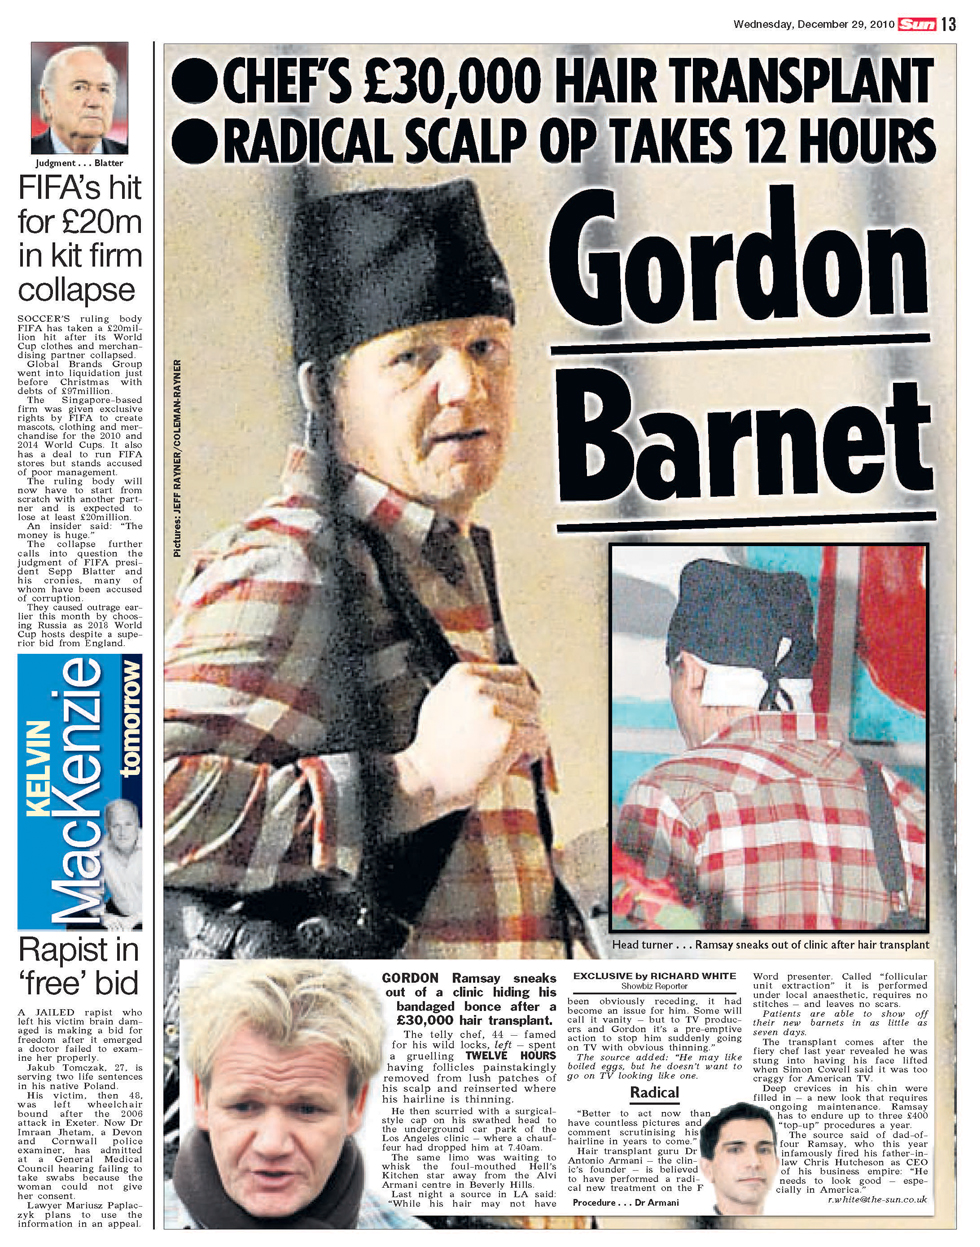 gordon ramsay spotted after undergoing hair transplant coleman rayner